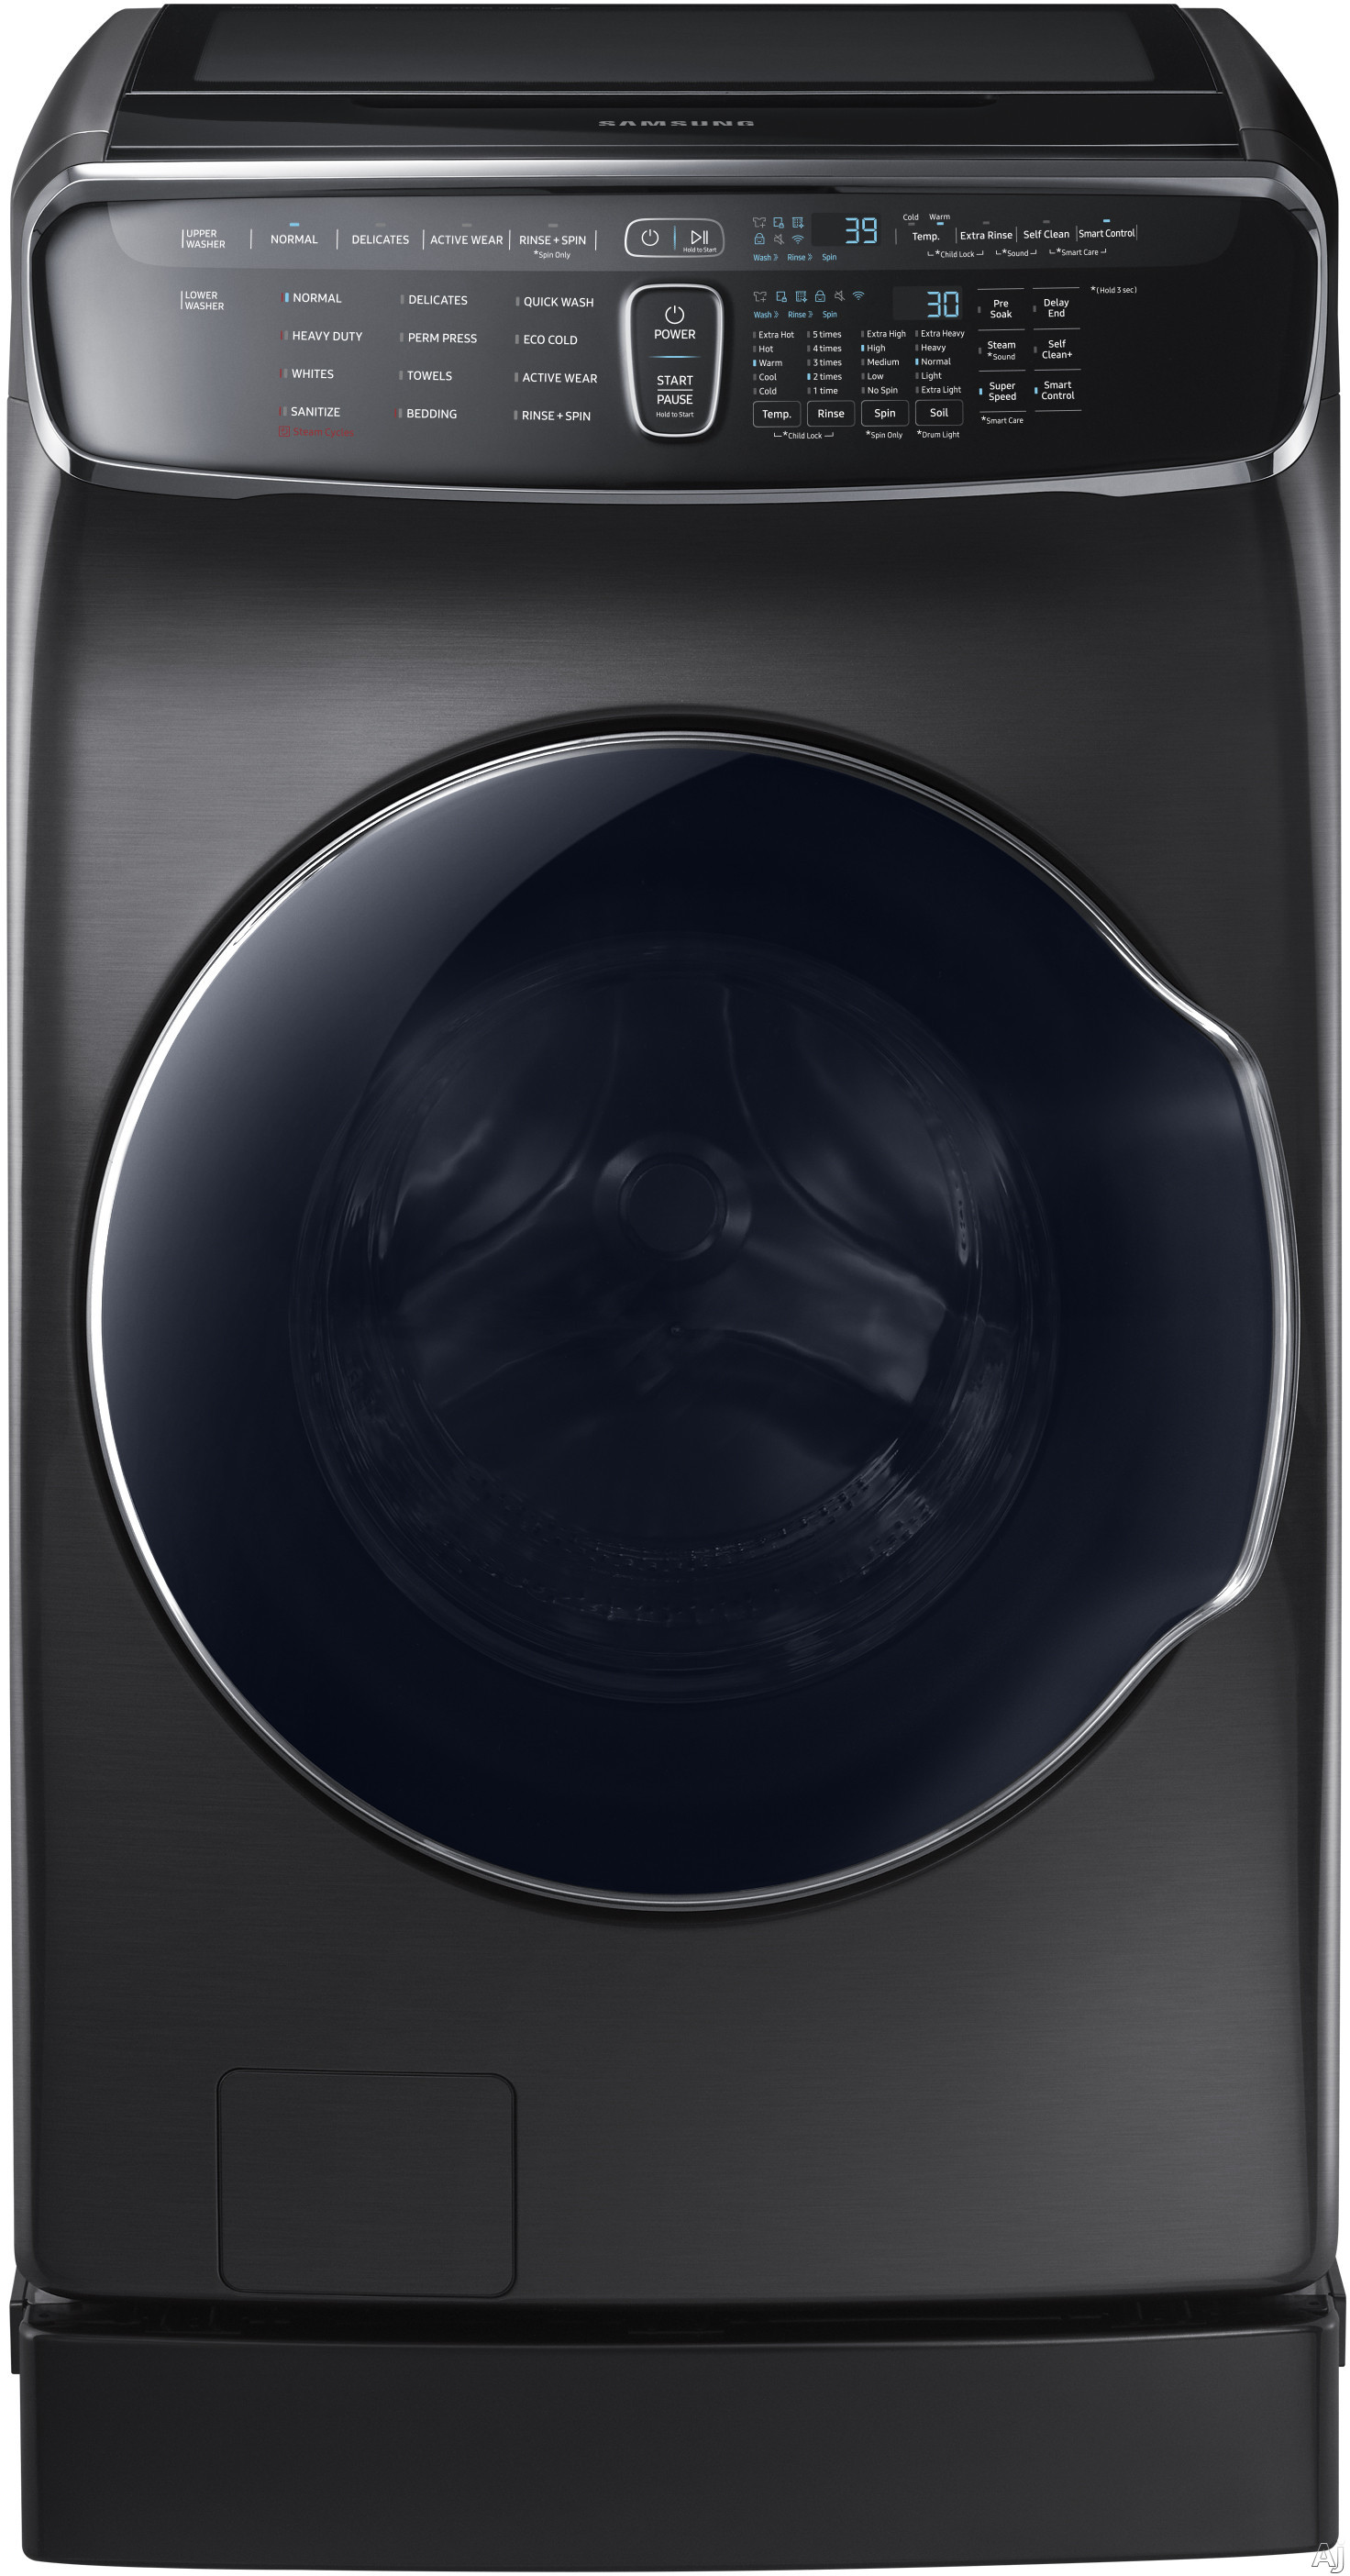 "Samsung WV60M9900A 27 Inch FlexWashâ""¢ Washer with Steam, Super Speed, Wi-Fi Connectivity, Smart Care, 13 Wash Cycles, Self Clean+, PowerFoamâ""¢, Sanitize Cycle, 3-Tray Dispenser, Vibration Reduction Plusâ""¢ and 6.0 cu. ft. Capacity"